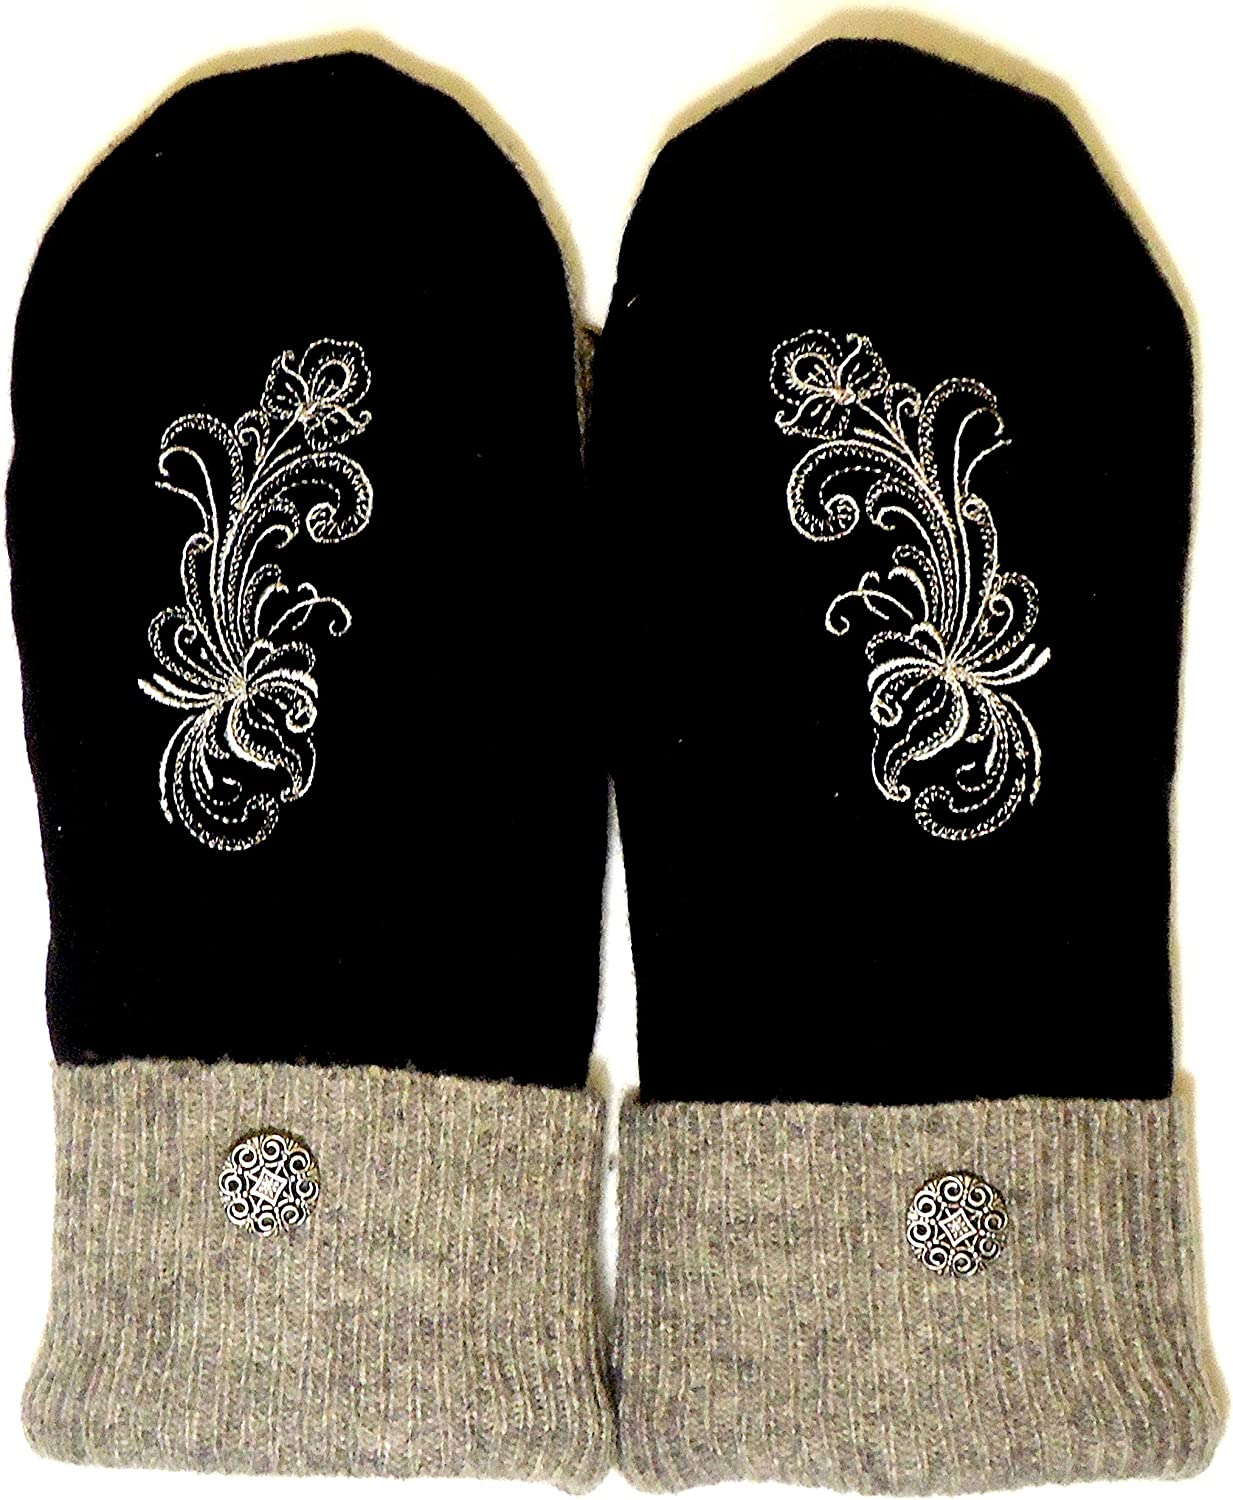 Integrity Designs Sweater Mittens, 100% Wool, Black and Gray with Polar Fleece Lining, Rosemaling Folk Art Motif Embroidery, Adult Size Medium/Large Ladies, Contrasting Button